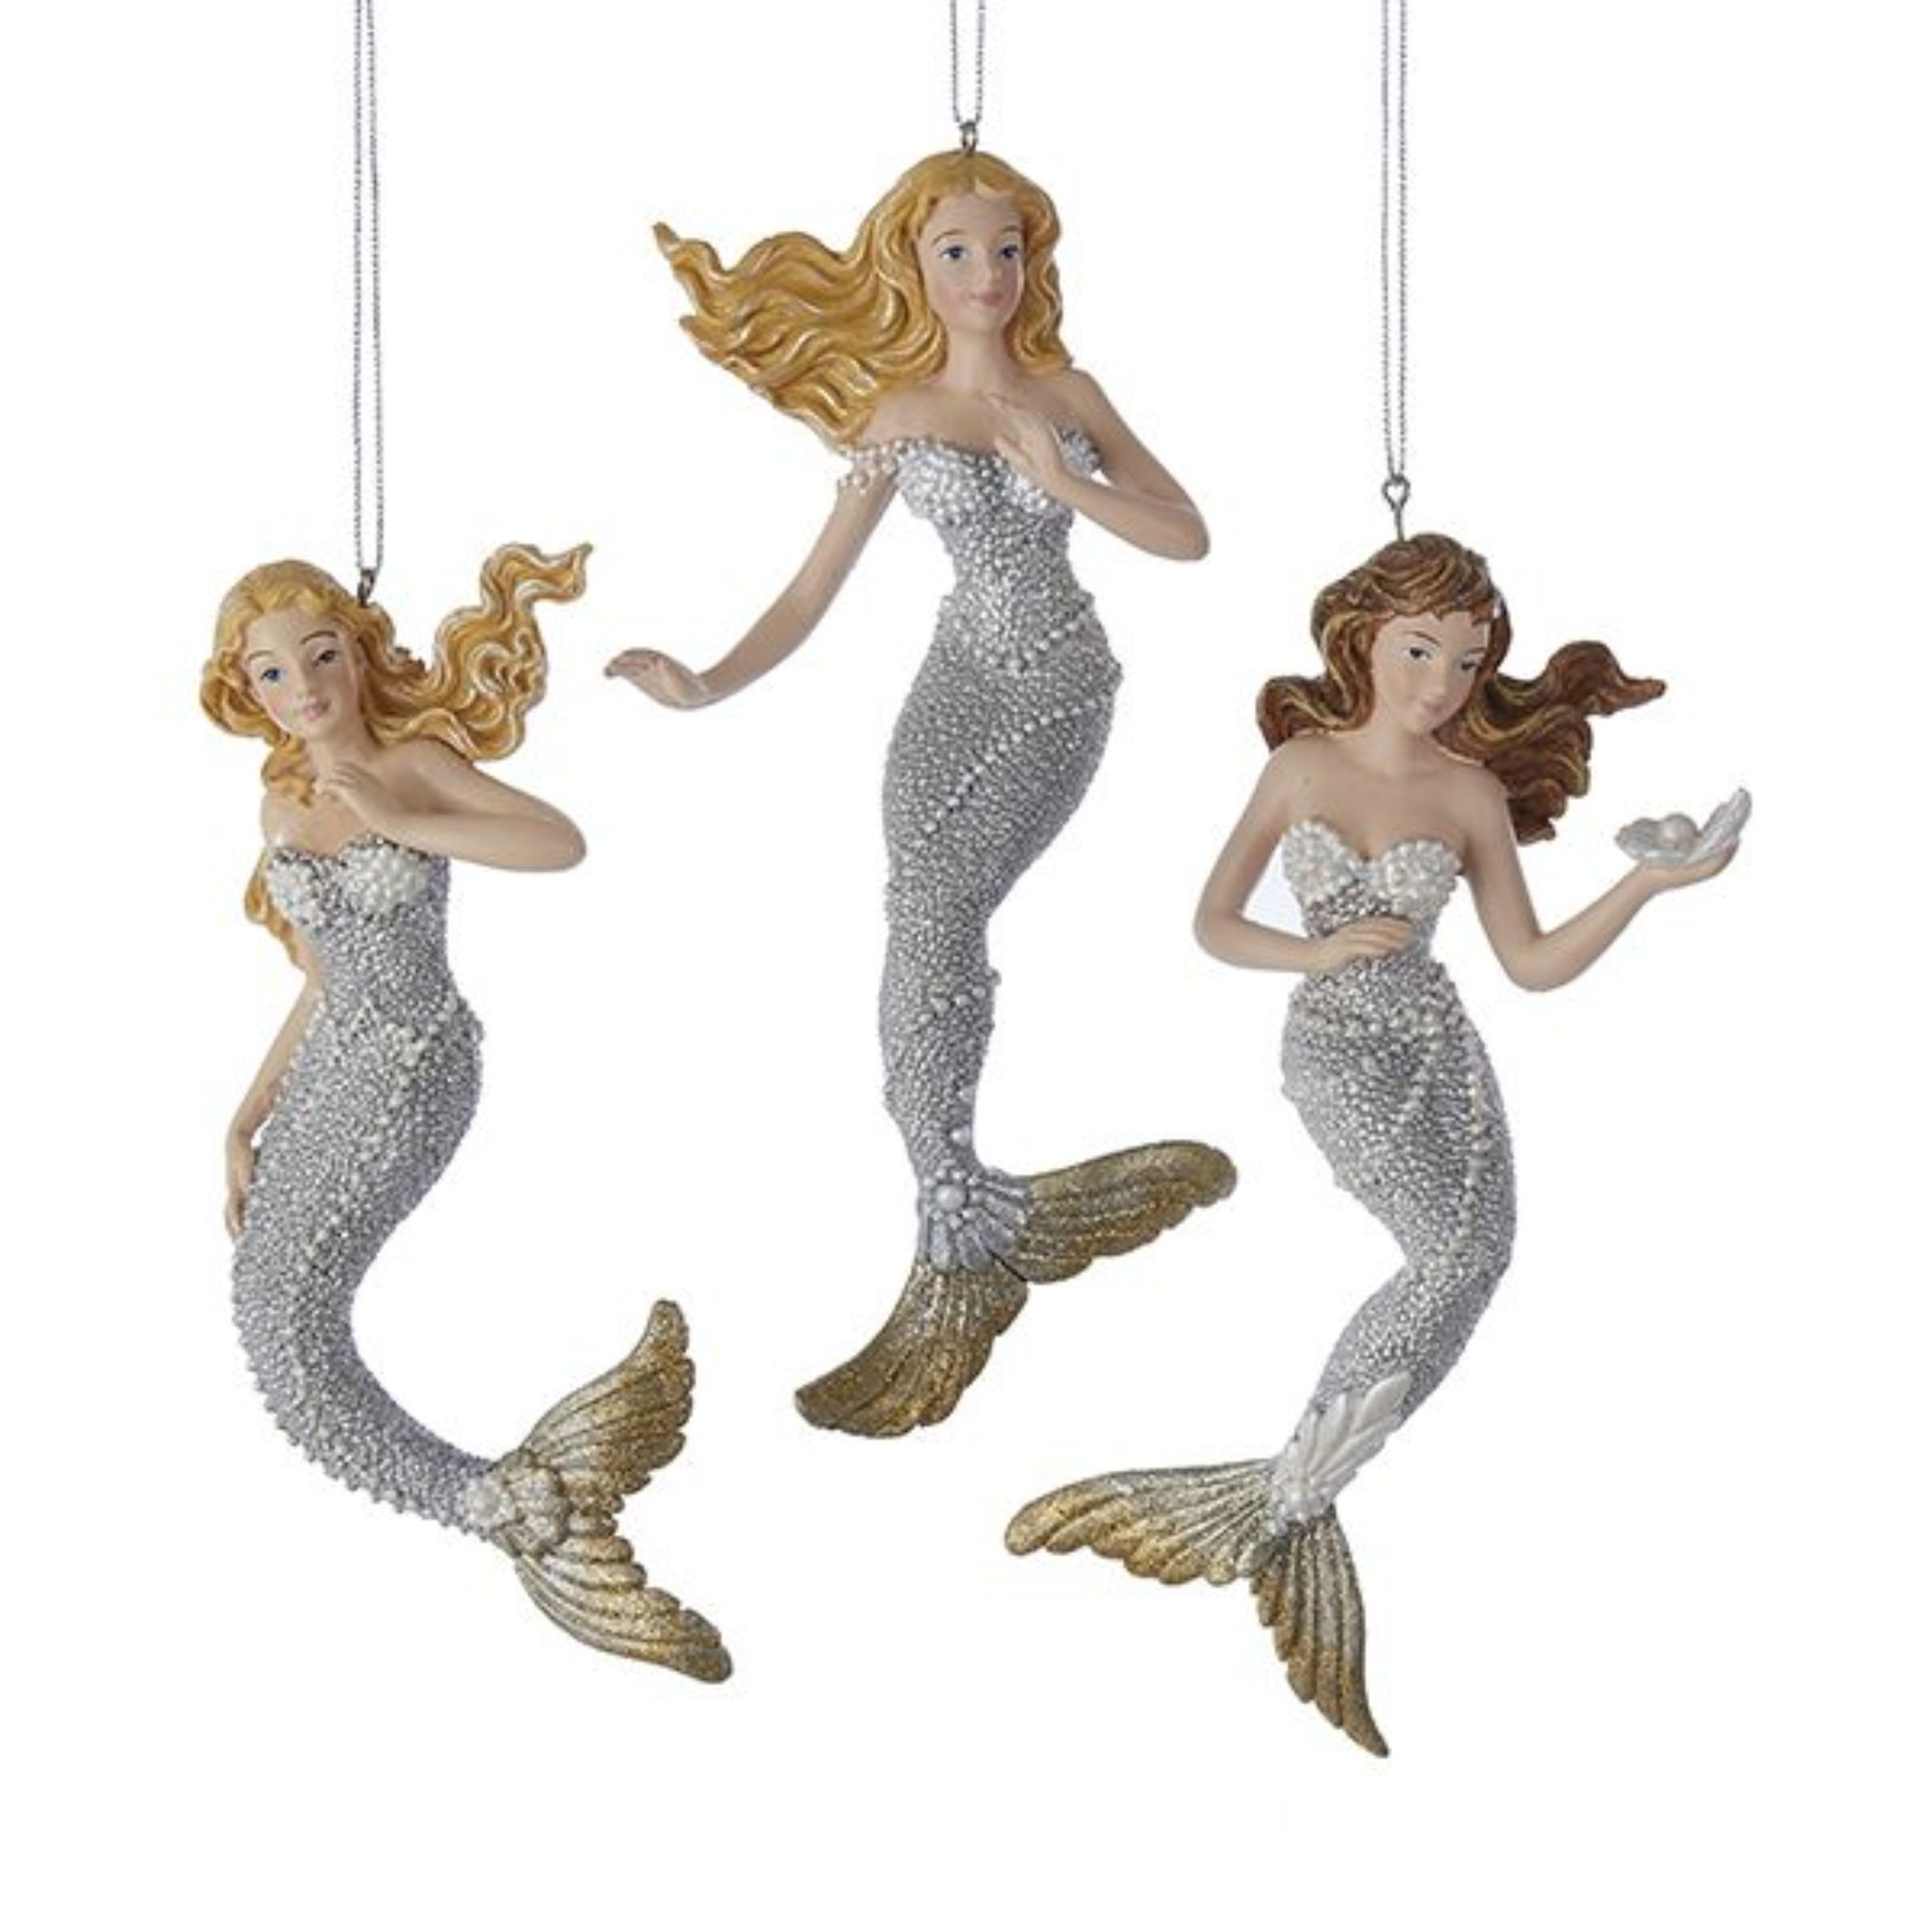 Pack Of 12 Silver And Gold Under The Sea Mermaids Christmas Figure Ornaments 6 25 Walmart Com Walmart Com